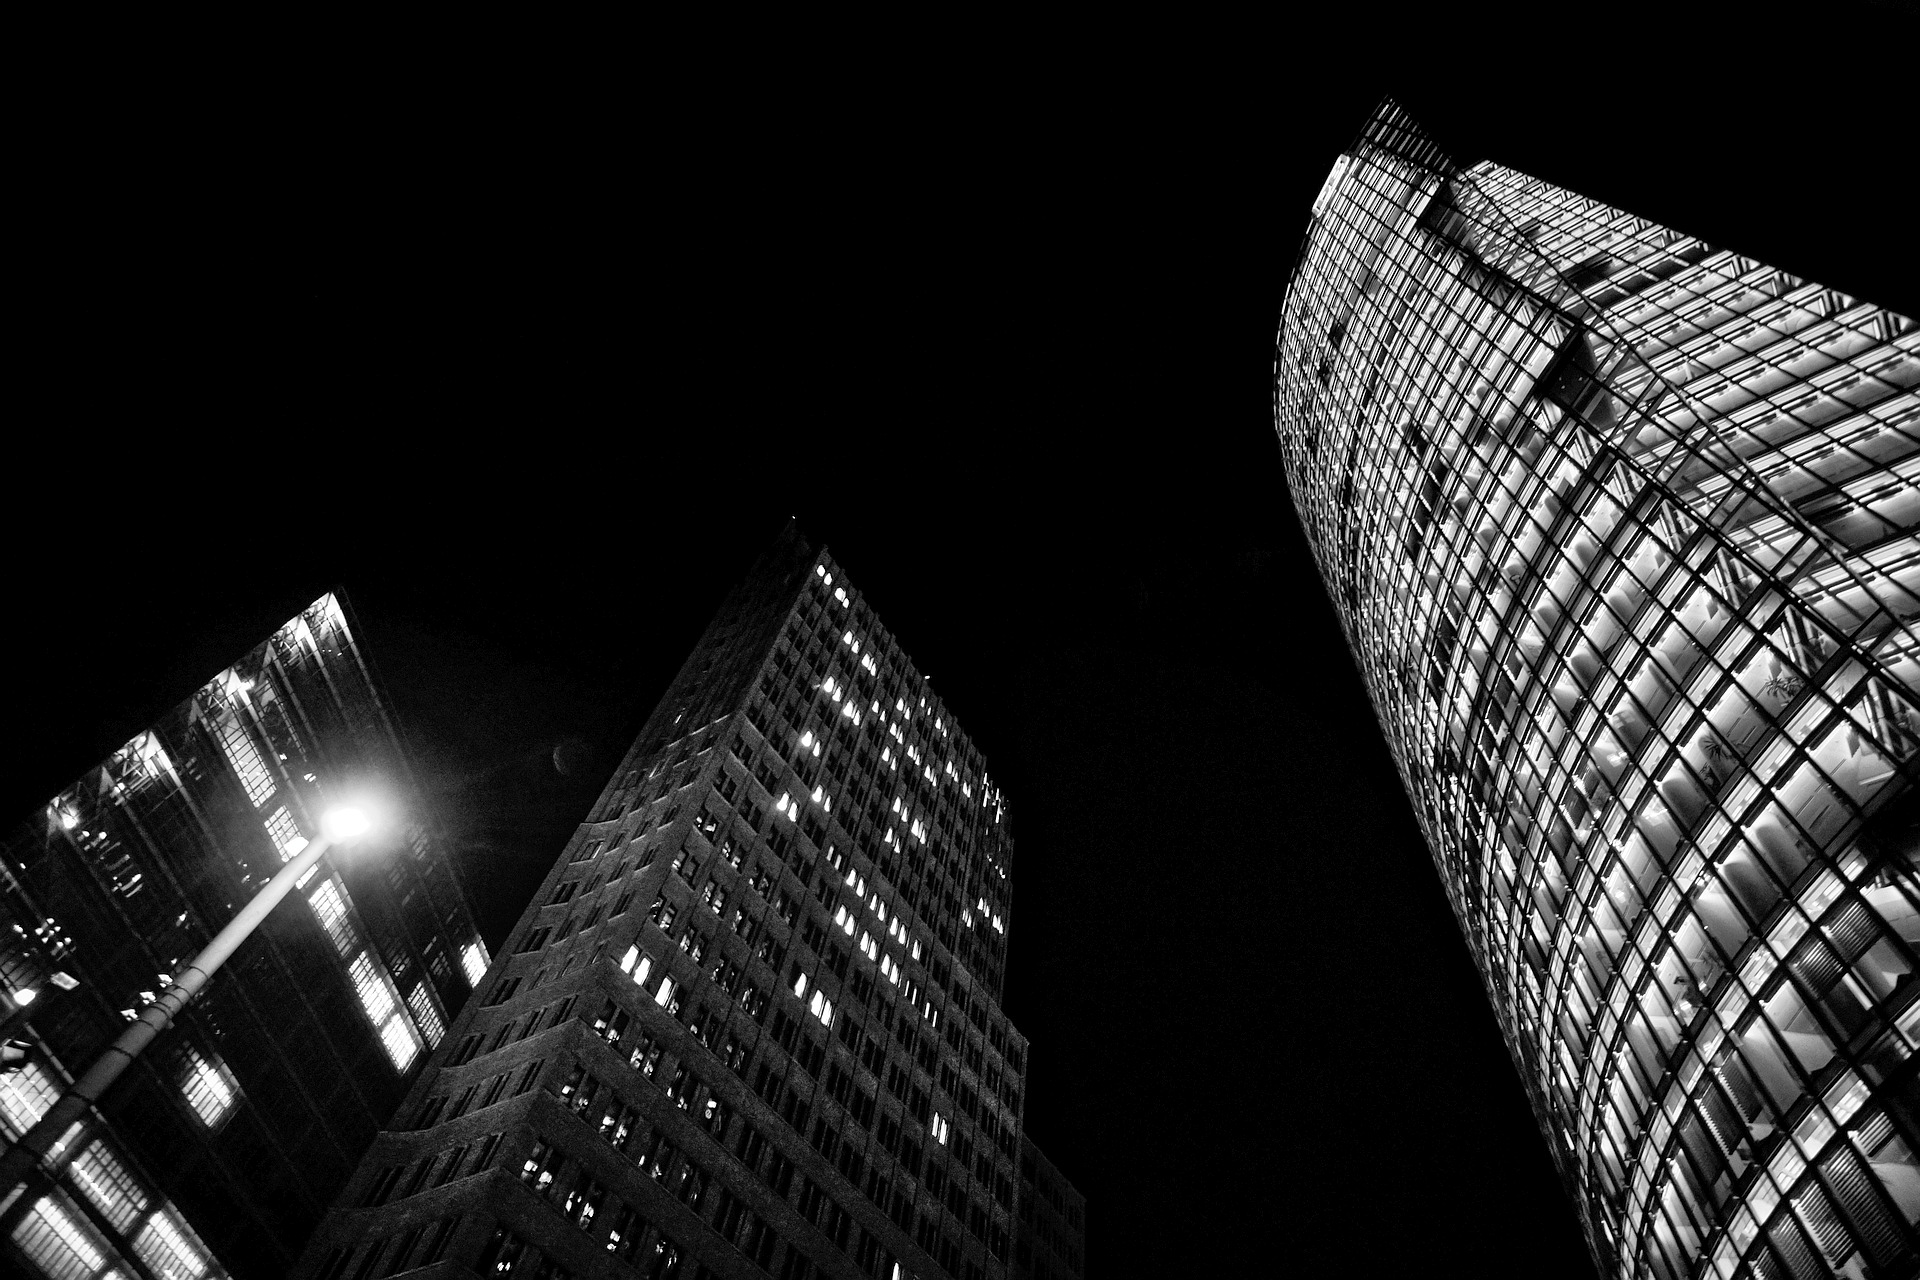 Berlin in Black - Potsdamer Platz